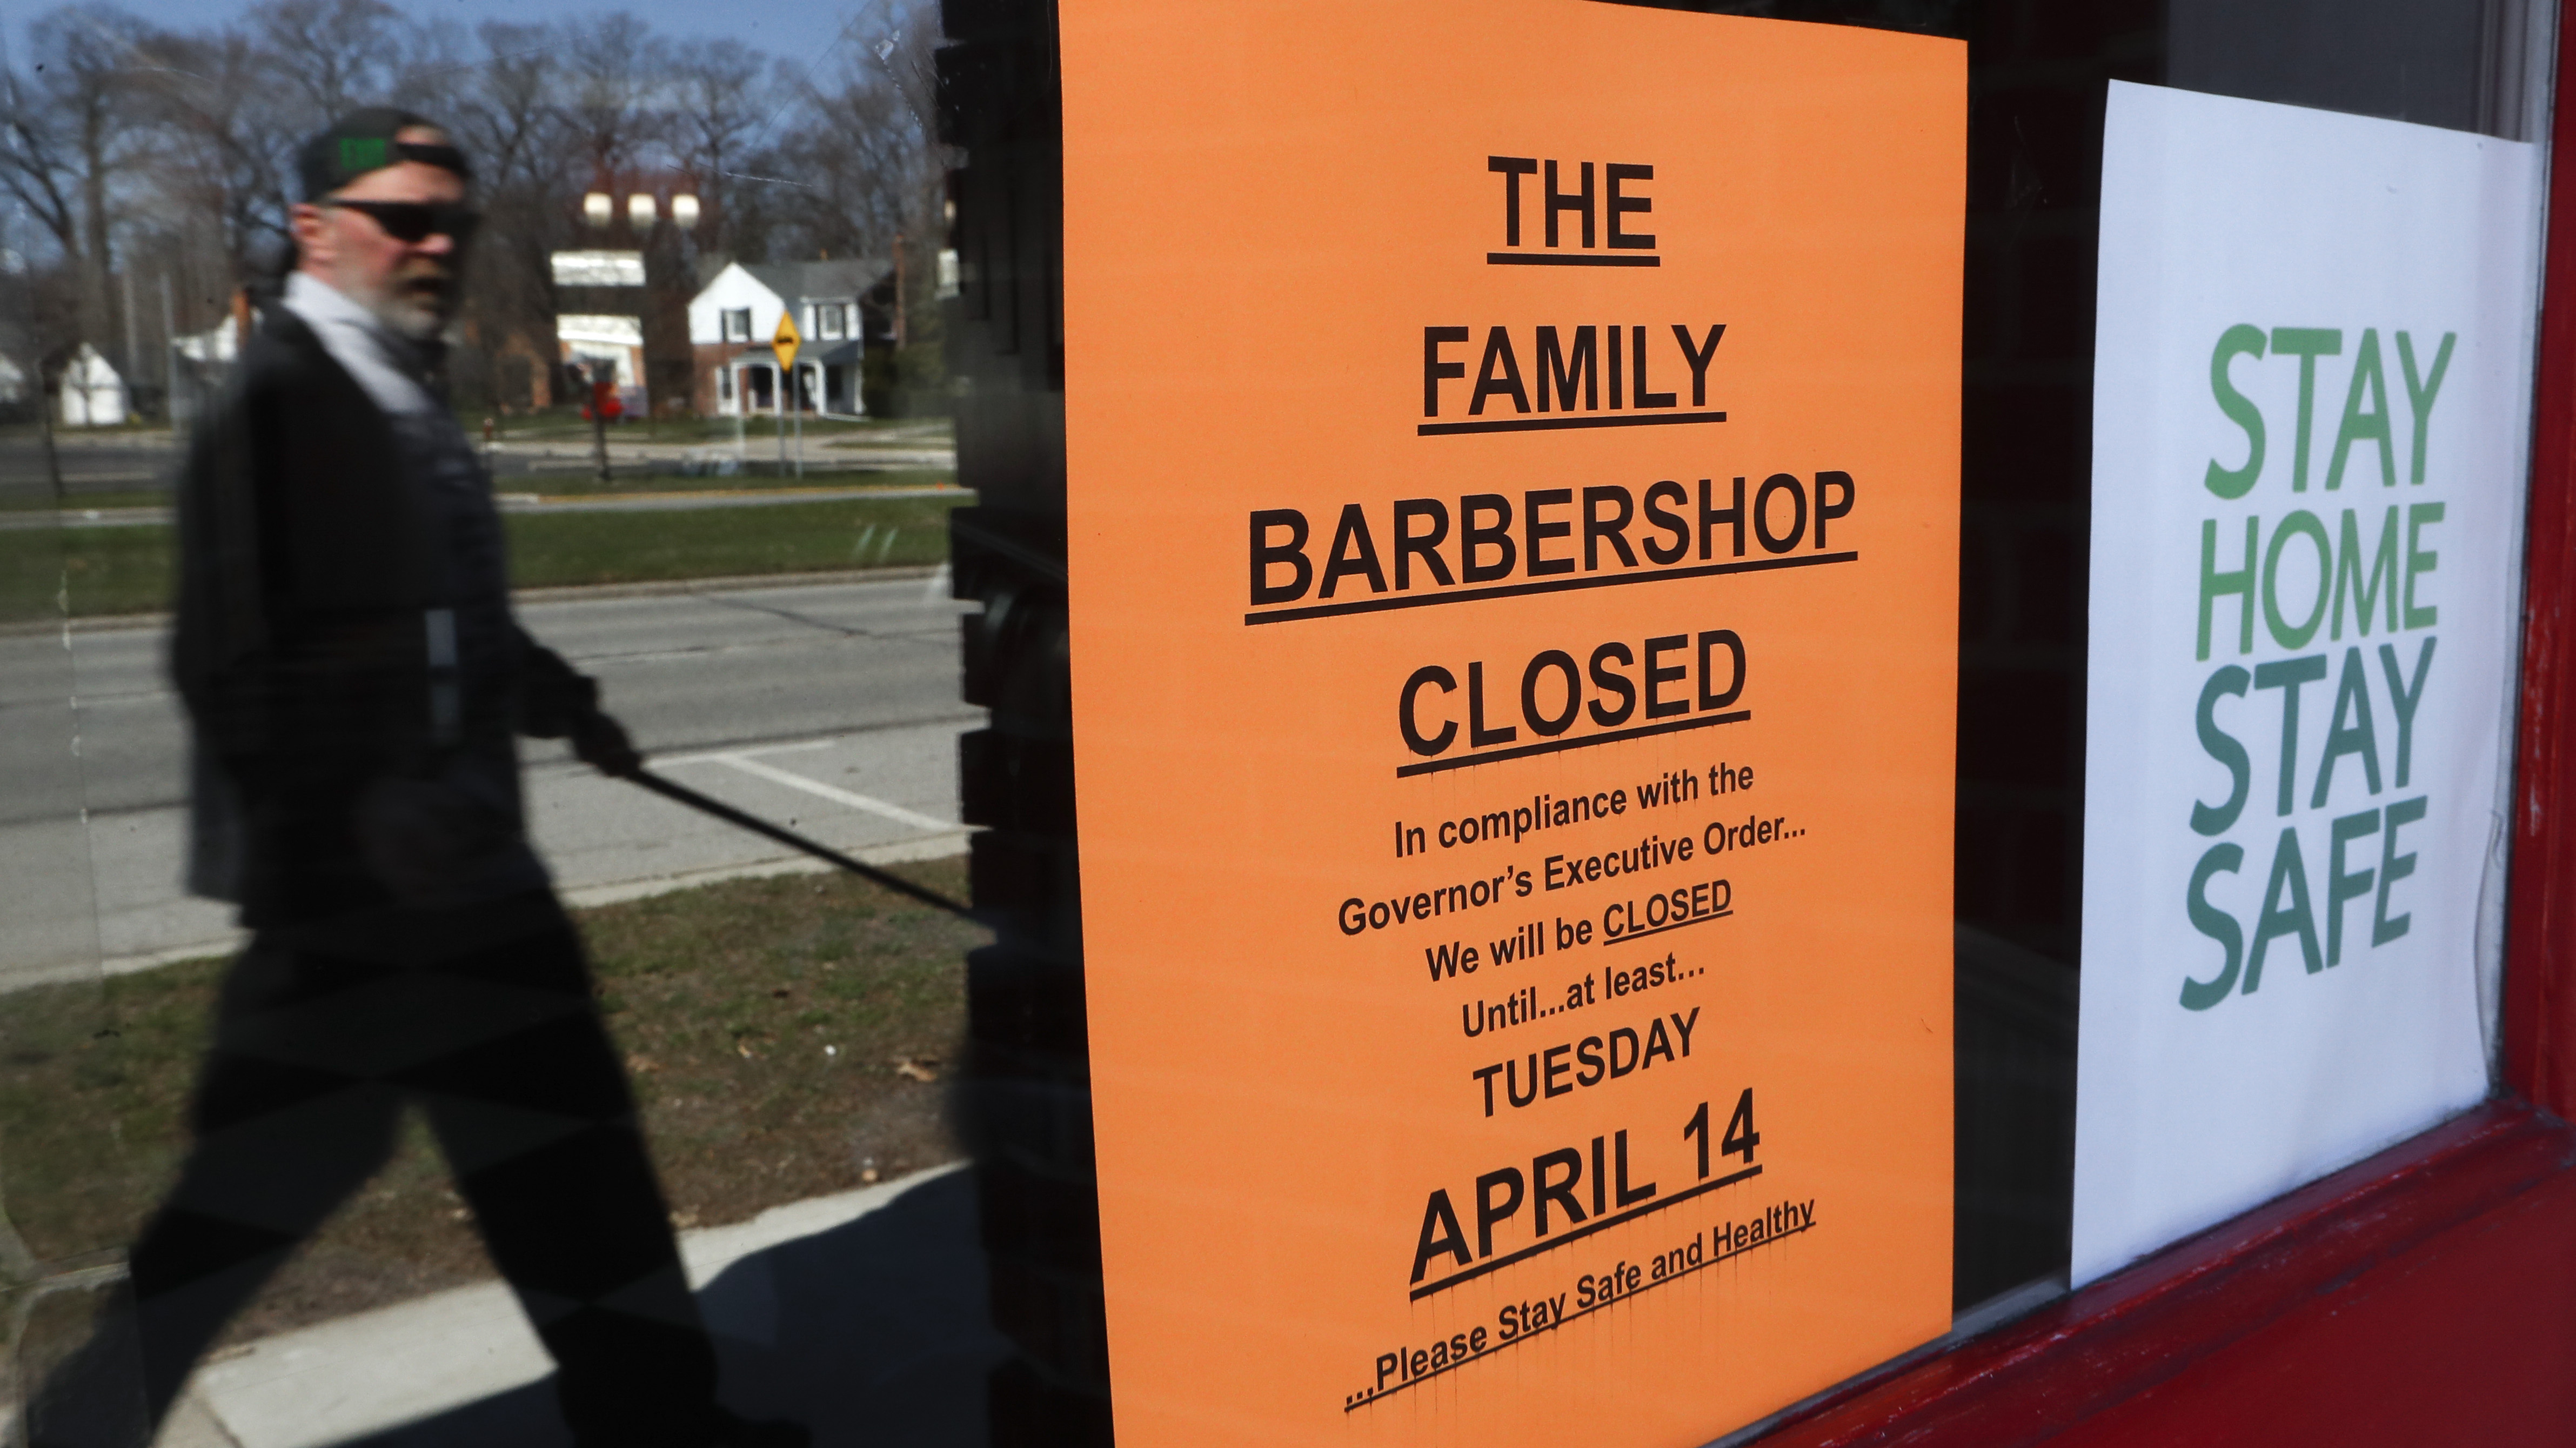 A pedestrian walks by The Family Barbershop, closed due to a Gov. Gretchen Whitmer executive order, in Grosse Pointe Woods, Mich., Thursday, April 2, 2020. The coronavirus COVID-19 outbreak has triggered a stunning collapse in the U.S. workforce with millions of people losing their jobs in the past two weeks and economists warn unemployment could reach levels not seen since the Depression, as the economic damage from the crisis piles up around the world.